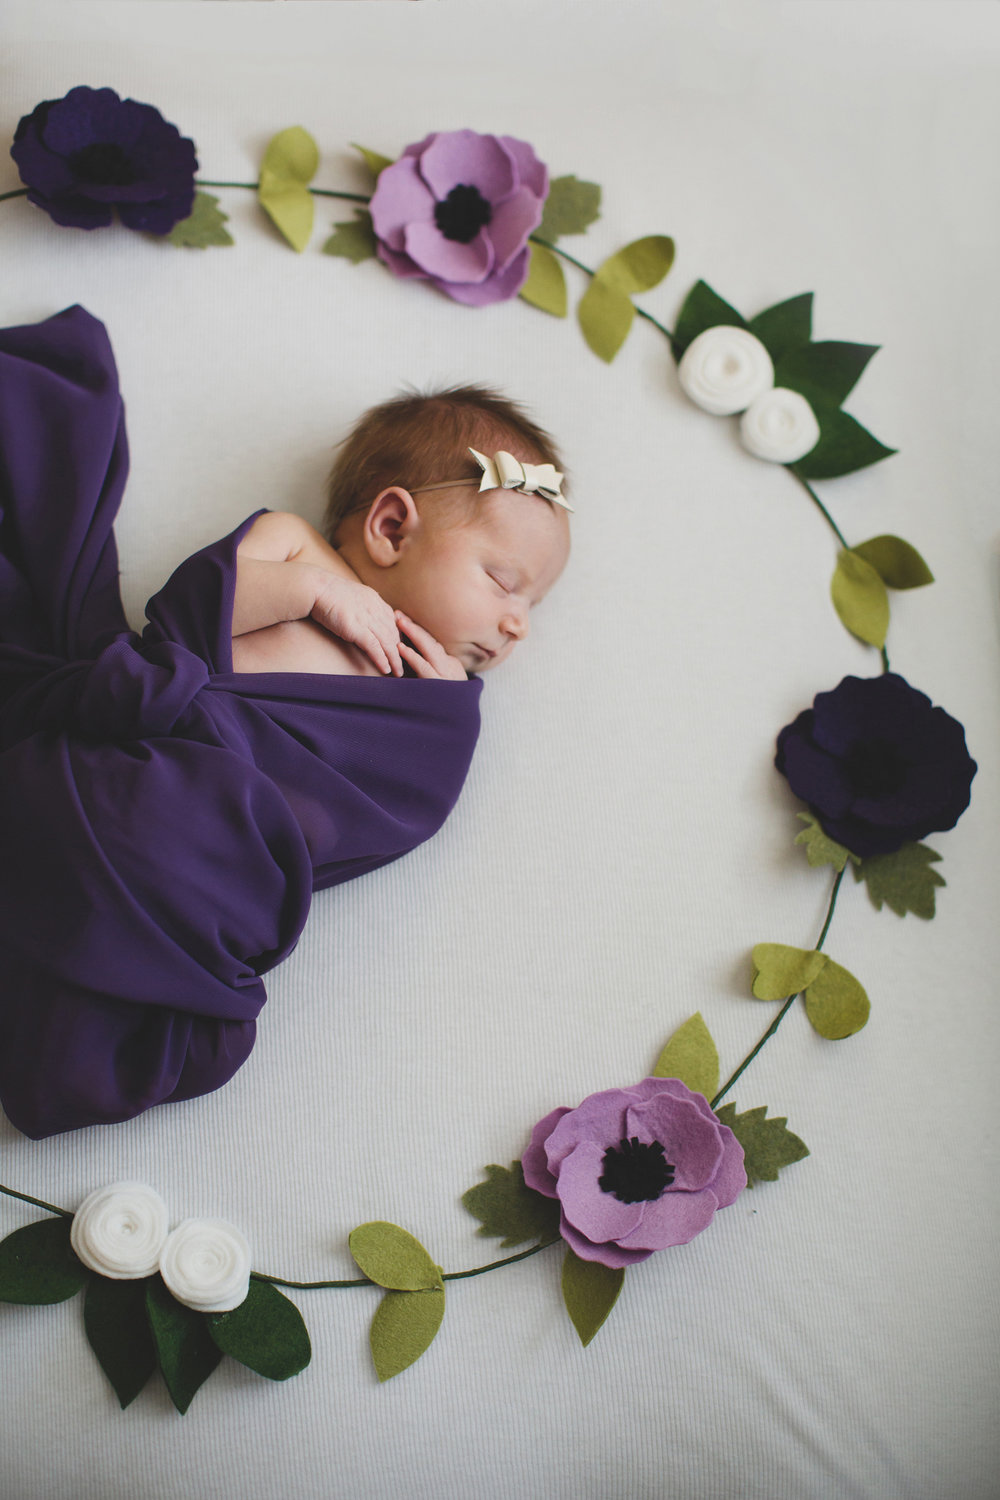 Jordan Edens Photography_tri cities photographer_tri cities portrait photographer_richland photographer_kennewick photographer_portrait photographer_tri cities family photographer_family photos_child photos_newborn photos_2018 favorites_2